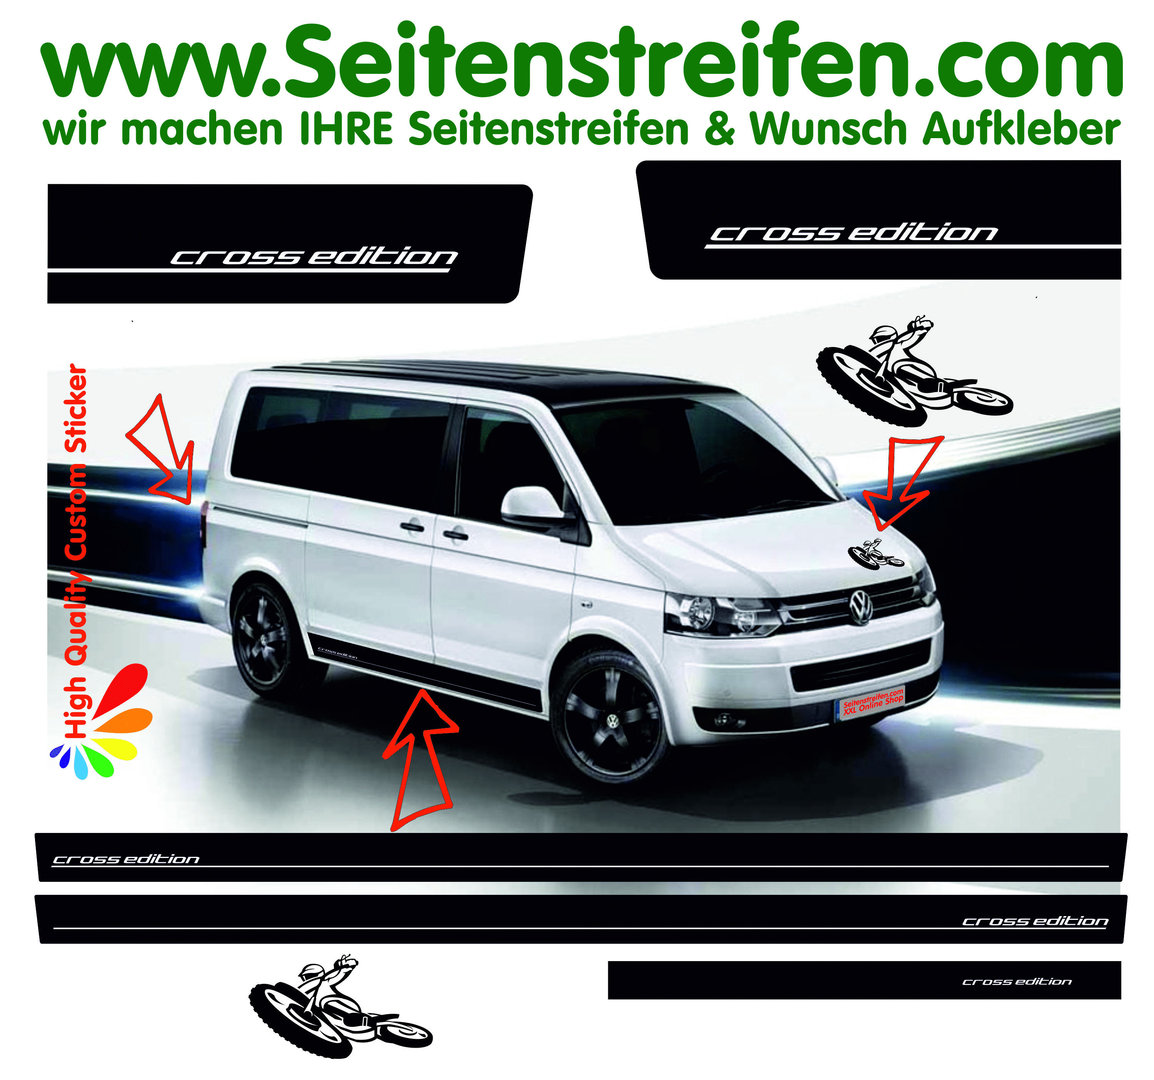 VW Bus T4 T5 T6 - Cross Edition Motocross - Side Stripes Graphics Decals Sticker Kit - N° 8952